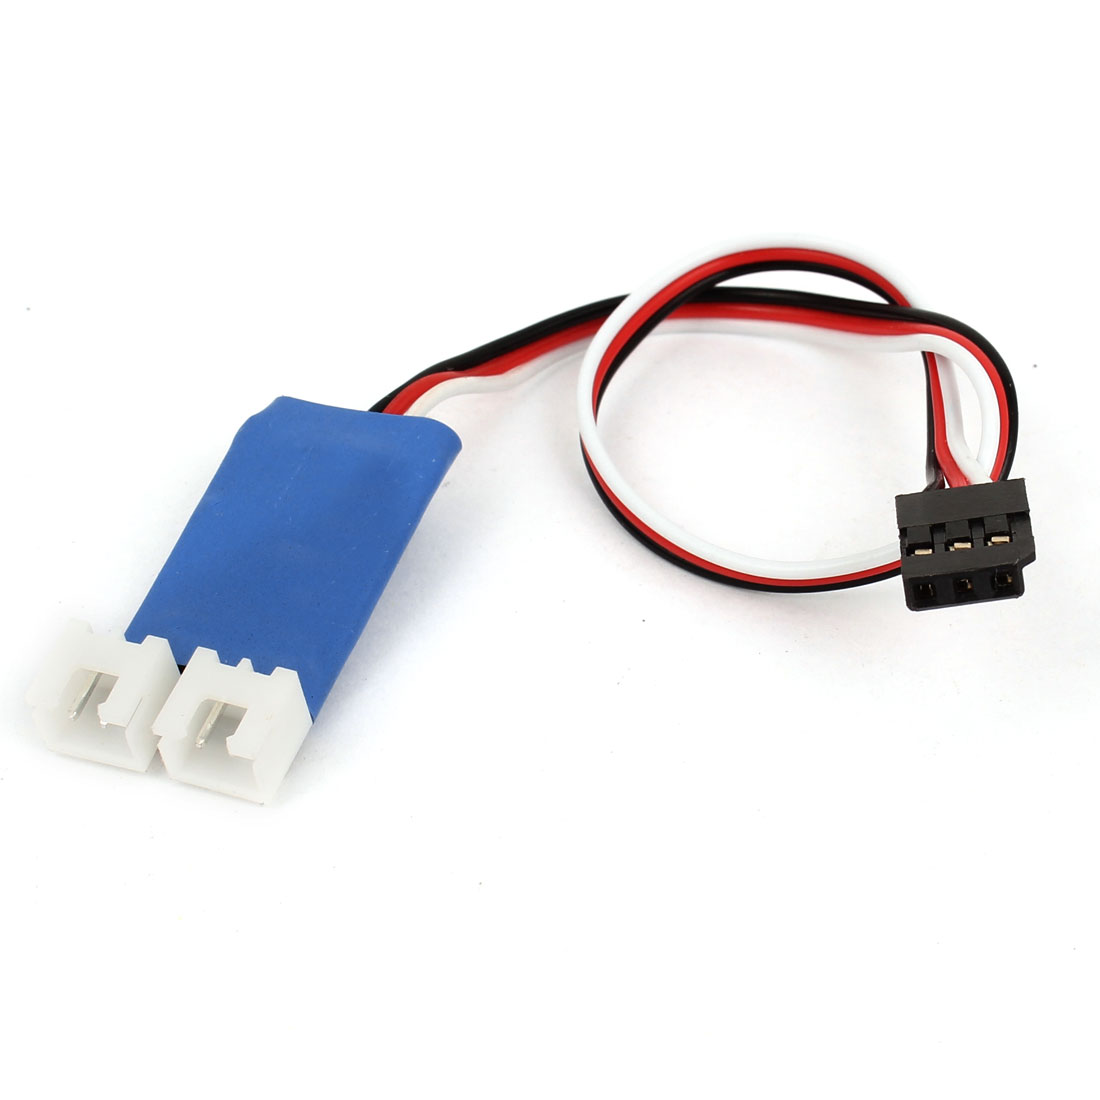 Mini Key Controller Circuit Board PCB Blue for Remote Control Car Lights